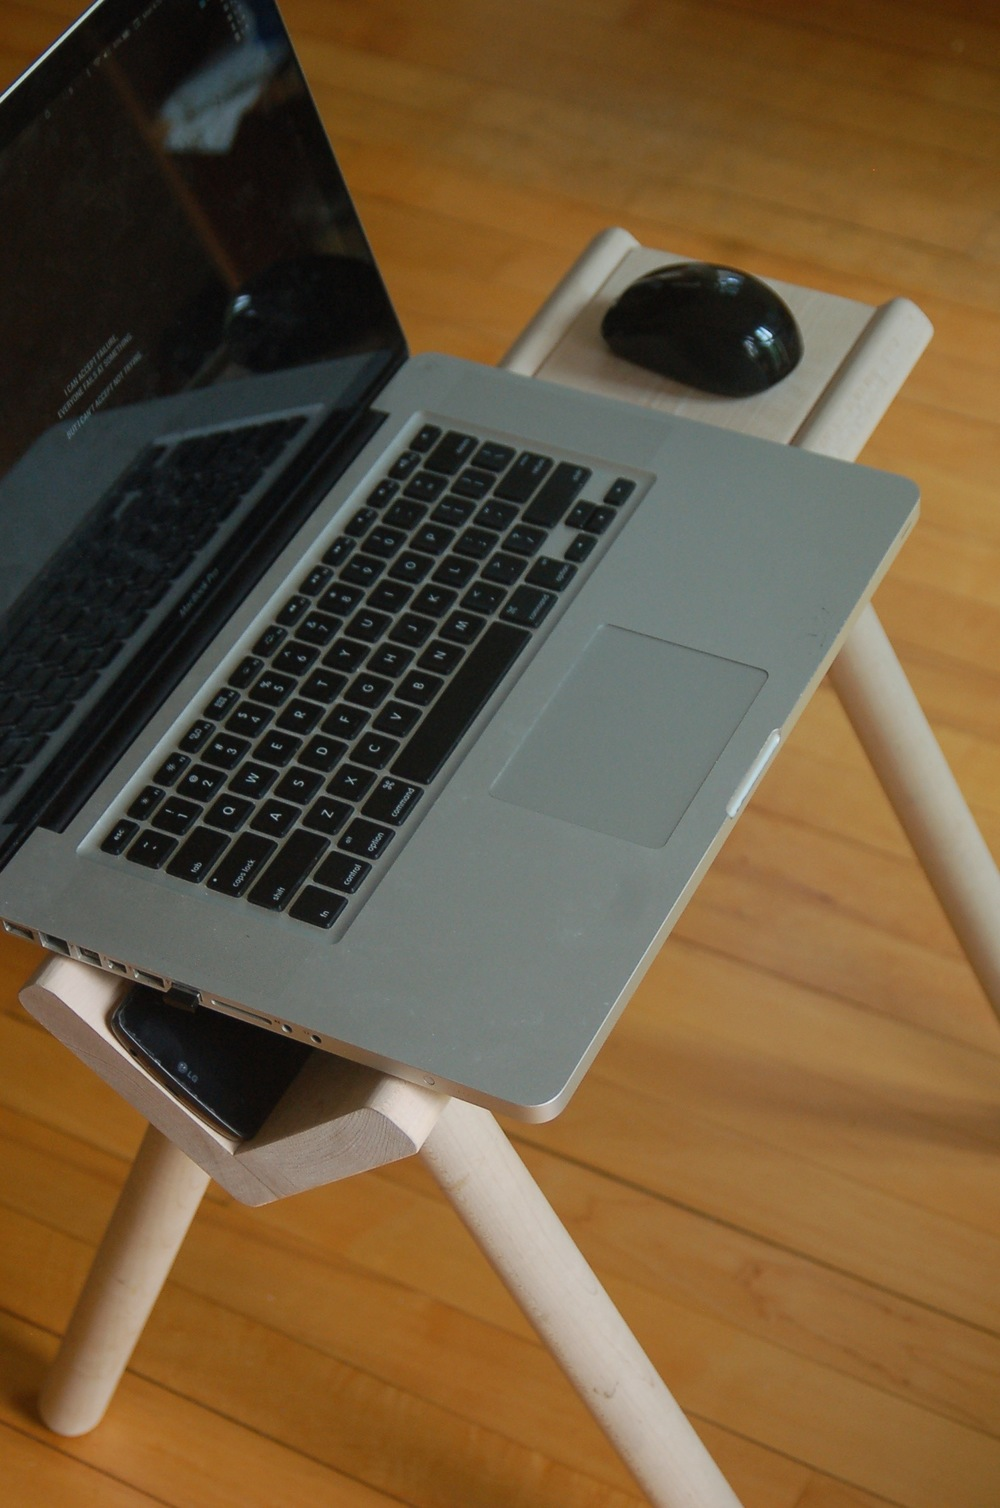 Use it as a laptop workstation.